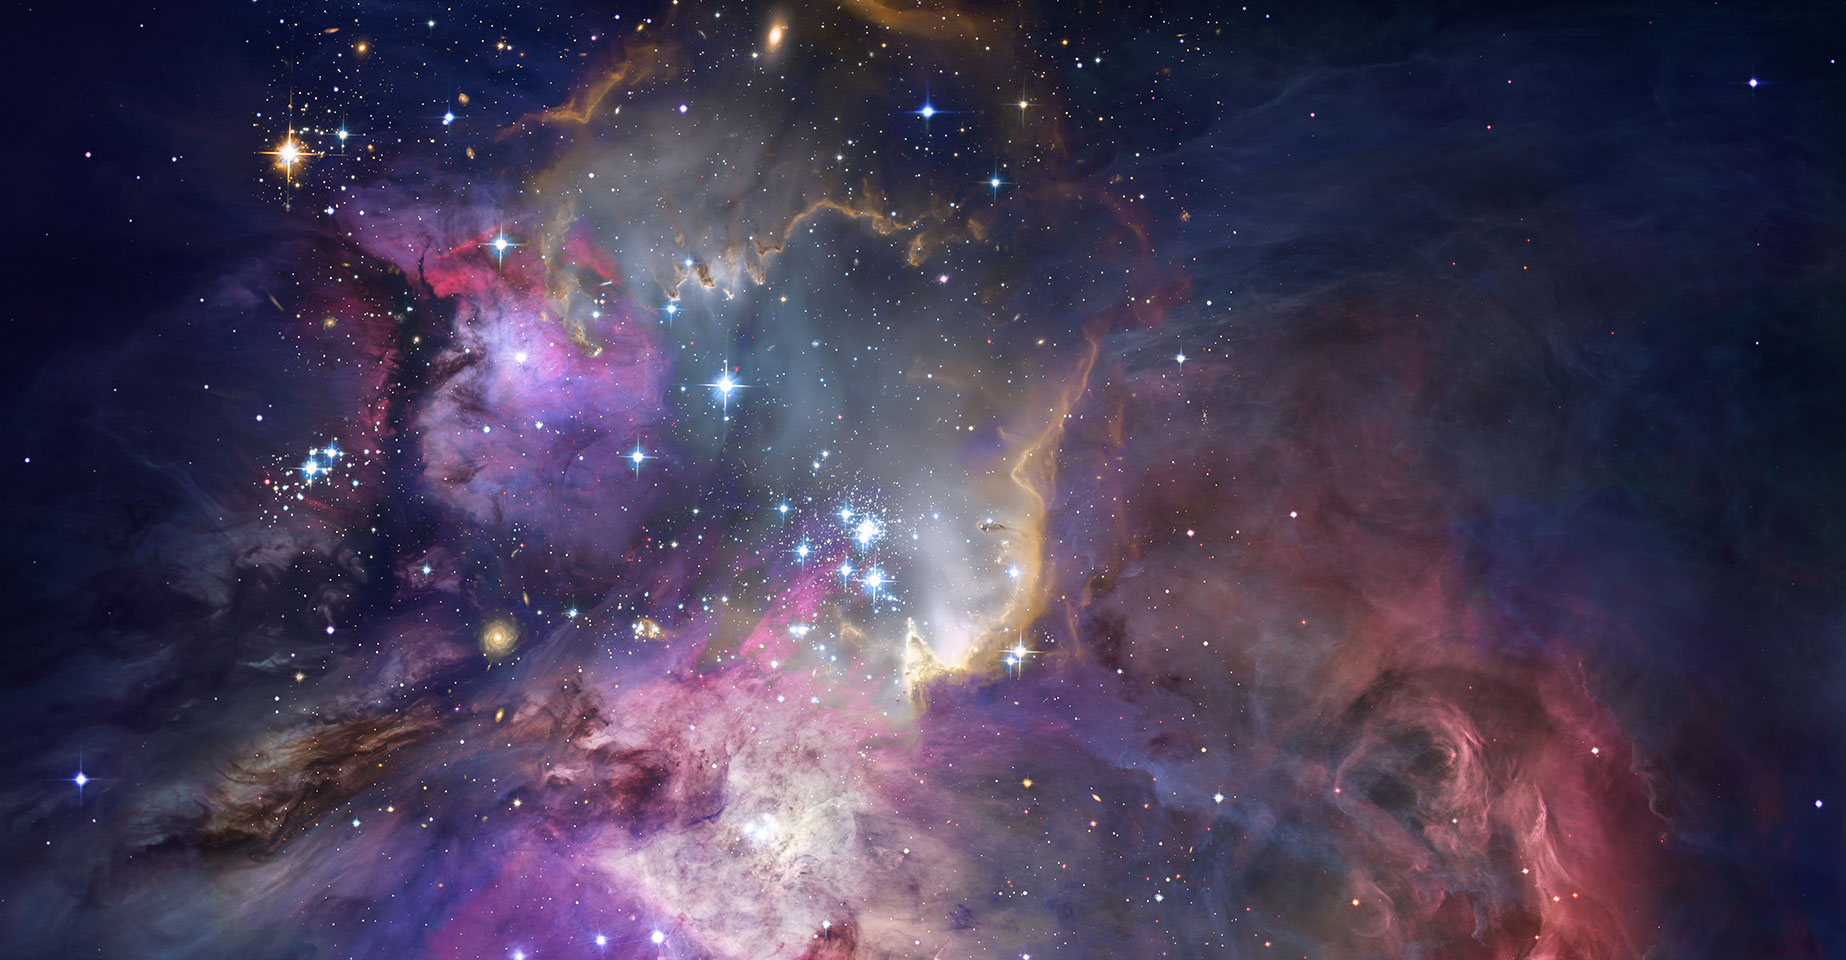 Stars and galaxies in outer space